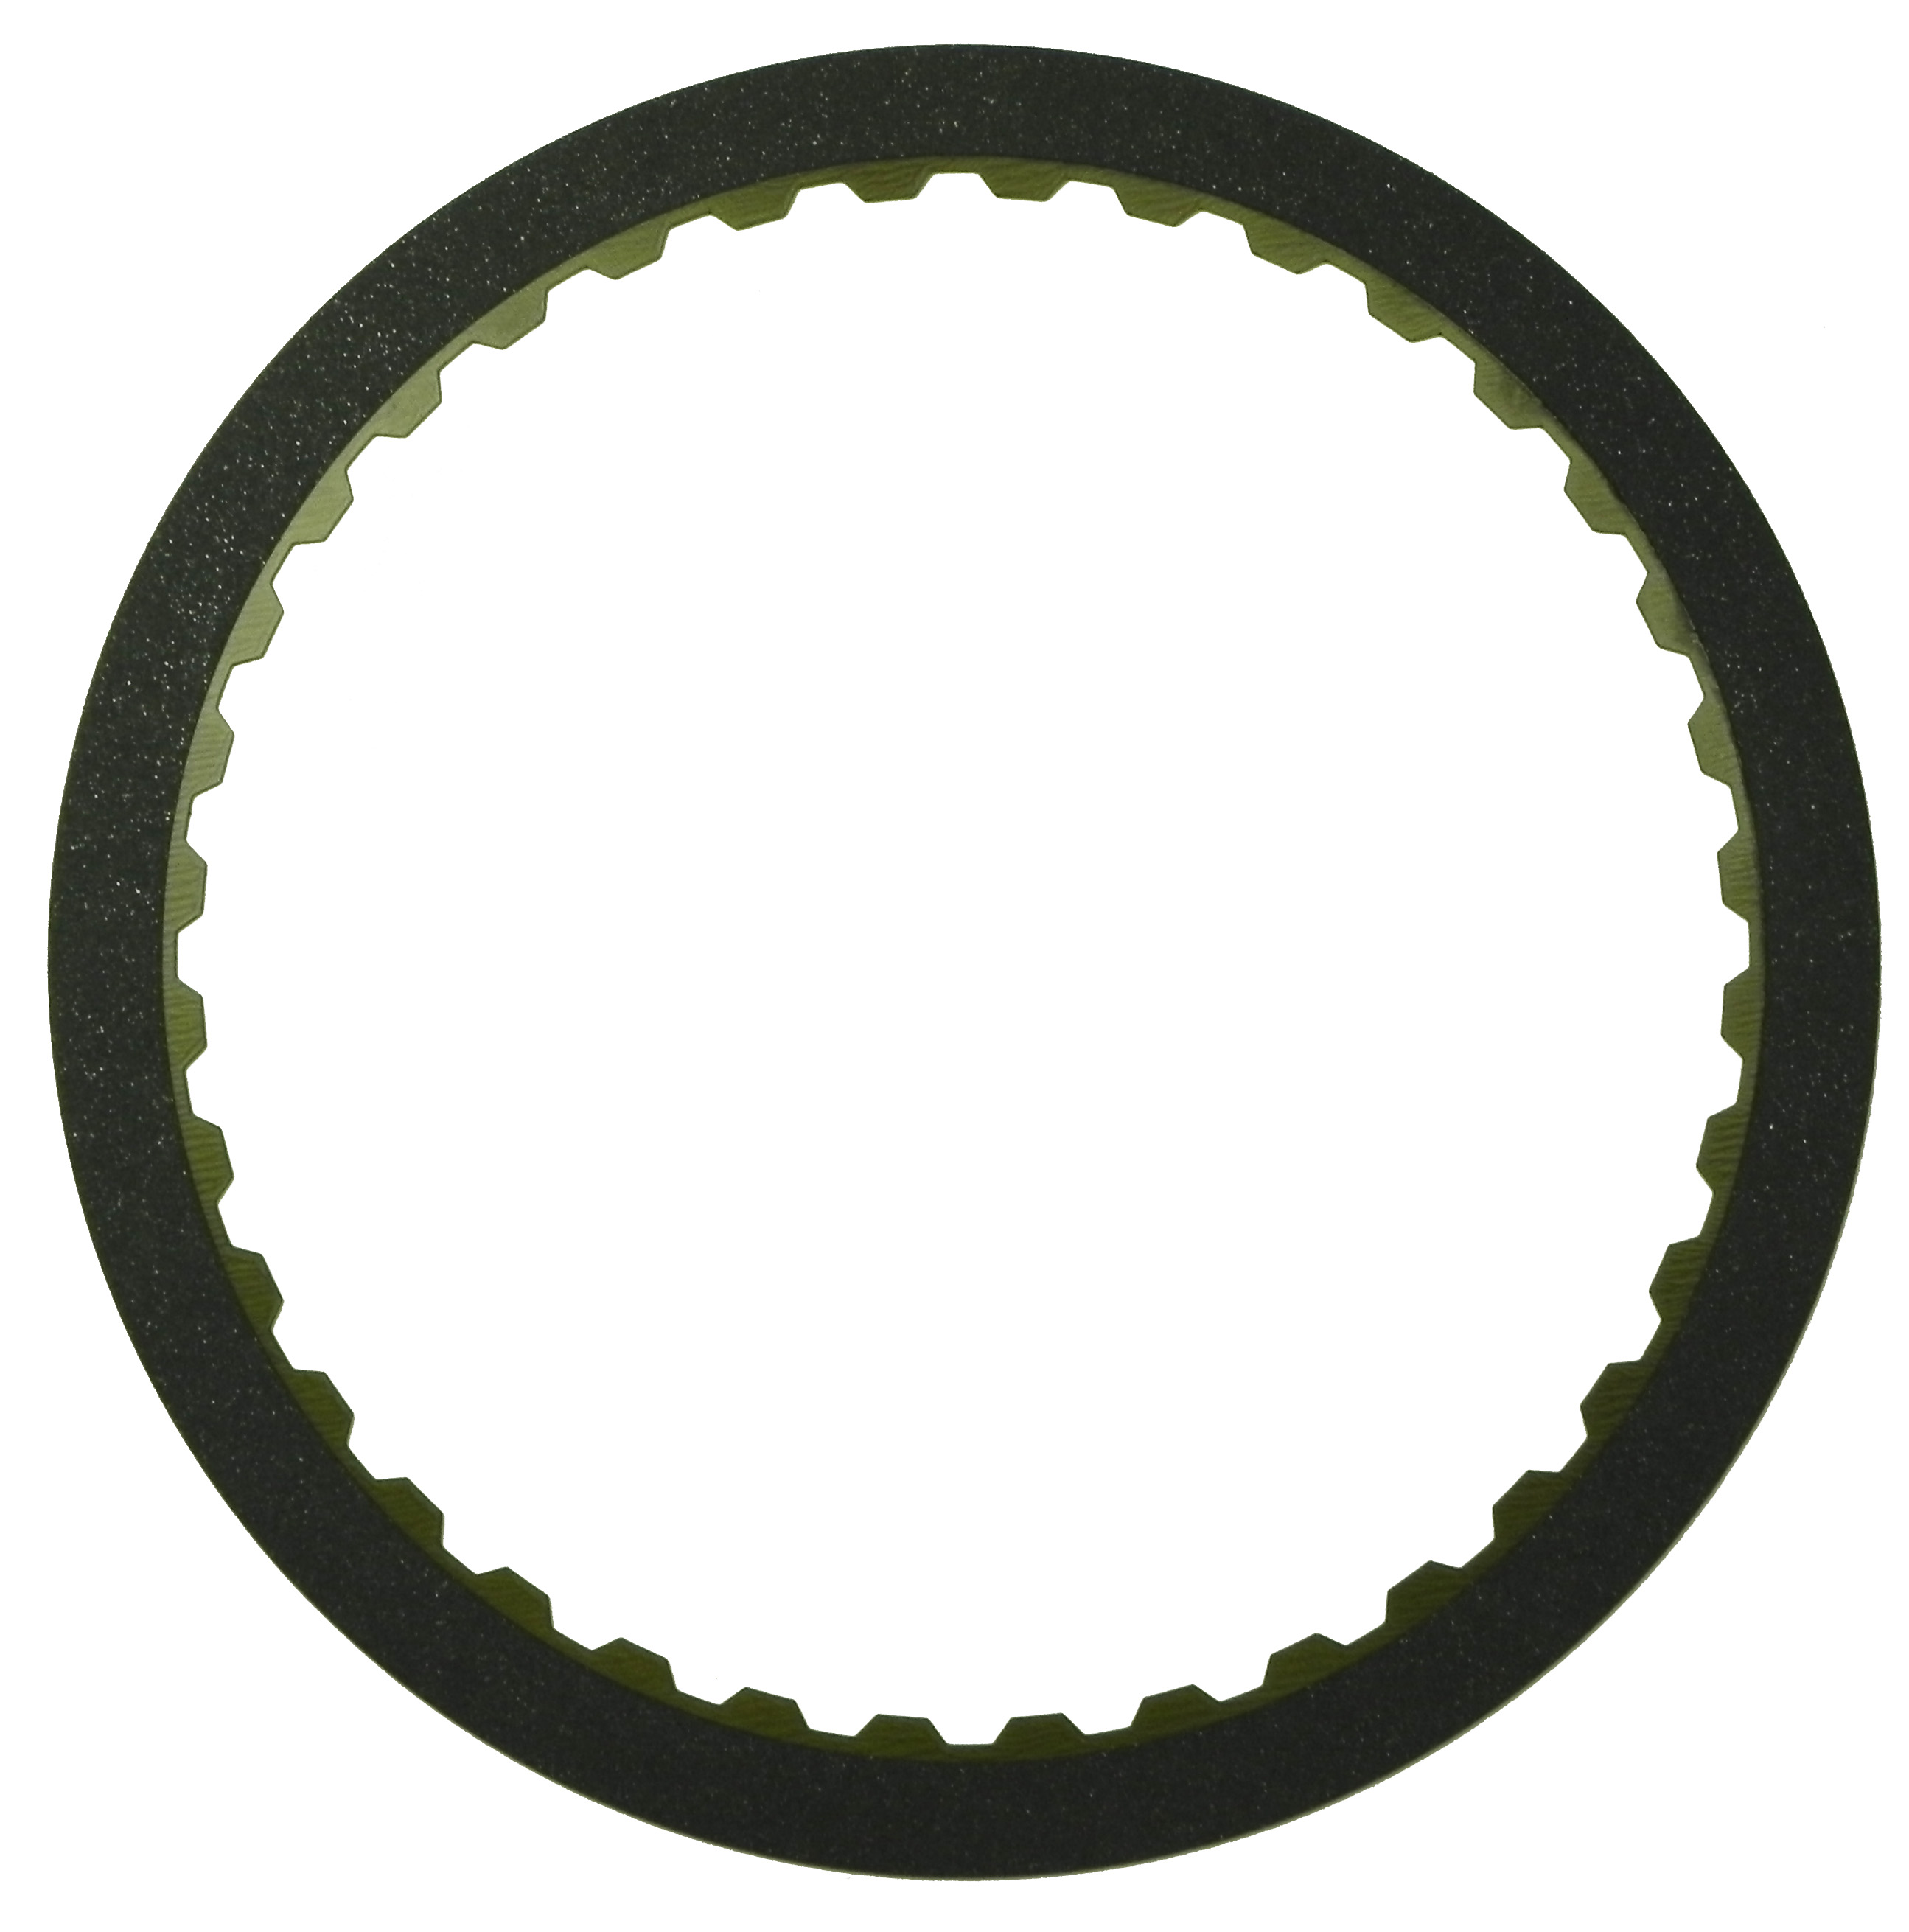 R558560 | 2008-2011 Friction Clutch Plate High Energy 1, 2, 3, 4 & 2, 6 Clutch High Energy